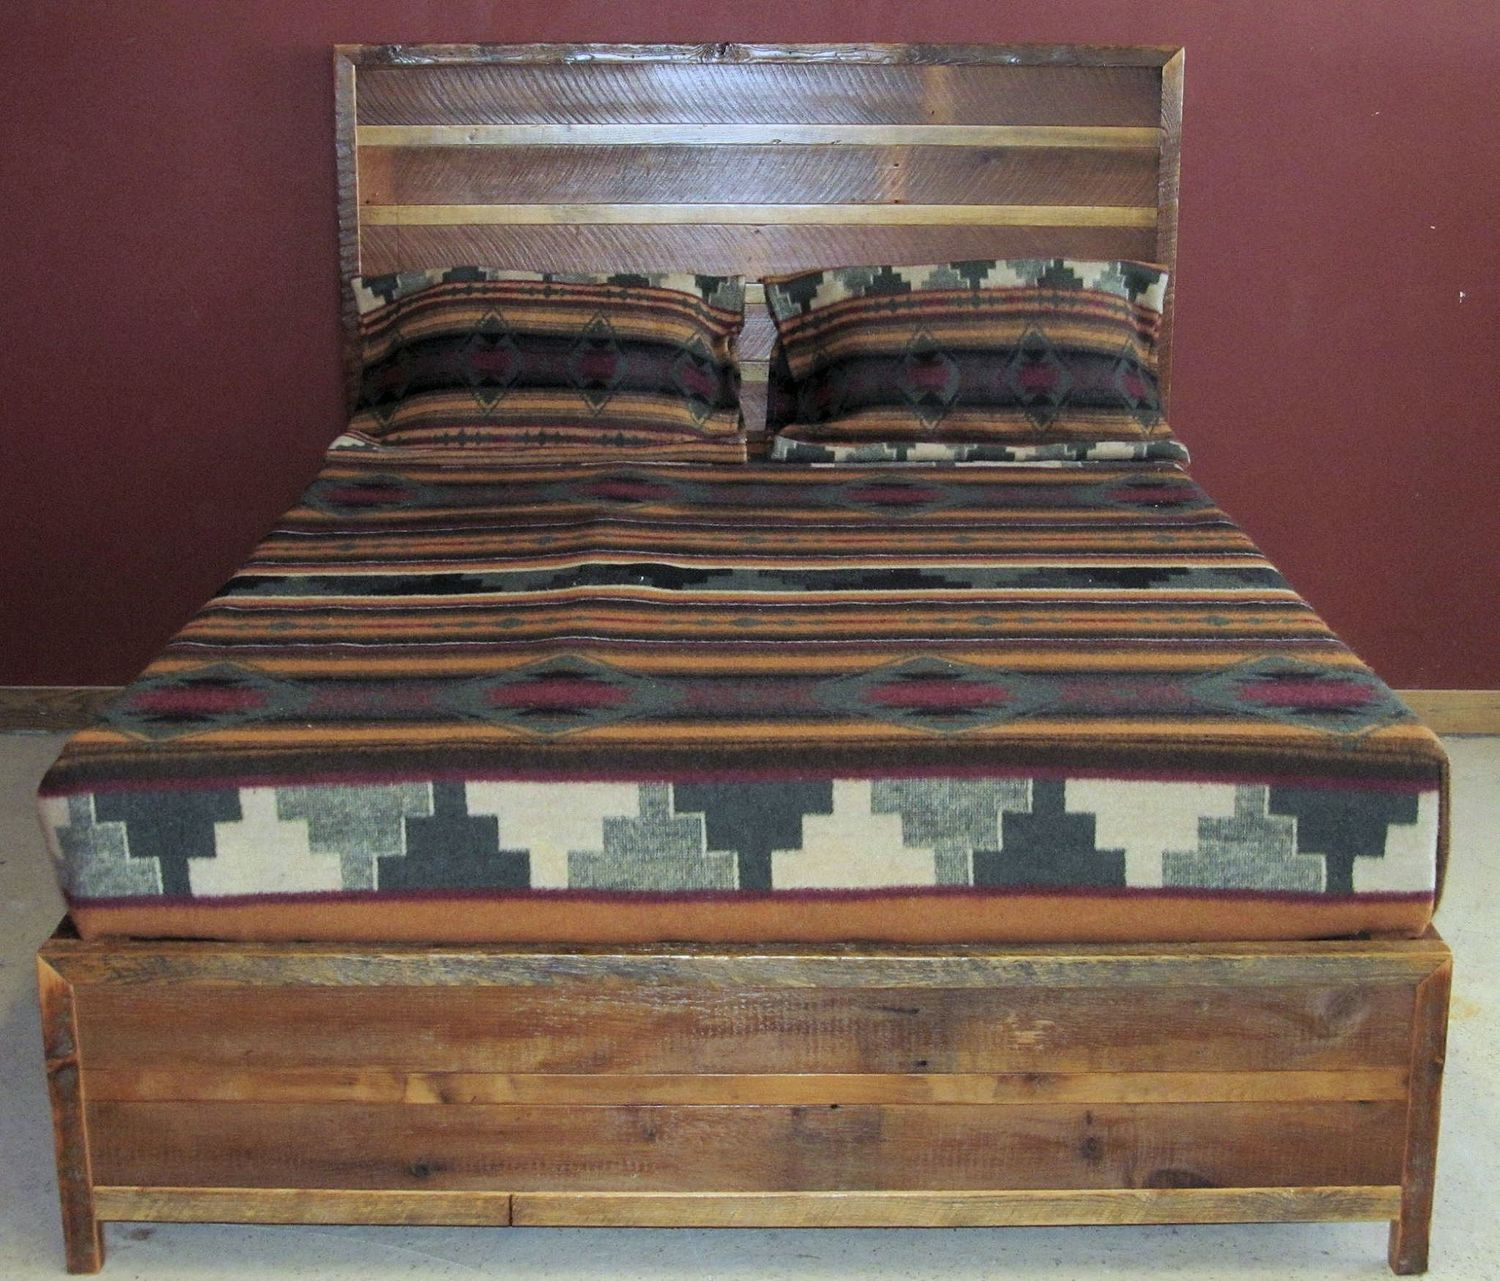 with style from buy to by modern reclaimed custom bed the barn barns headboard wood order slanted strongoakswoodshop a frame made